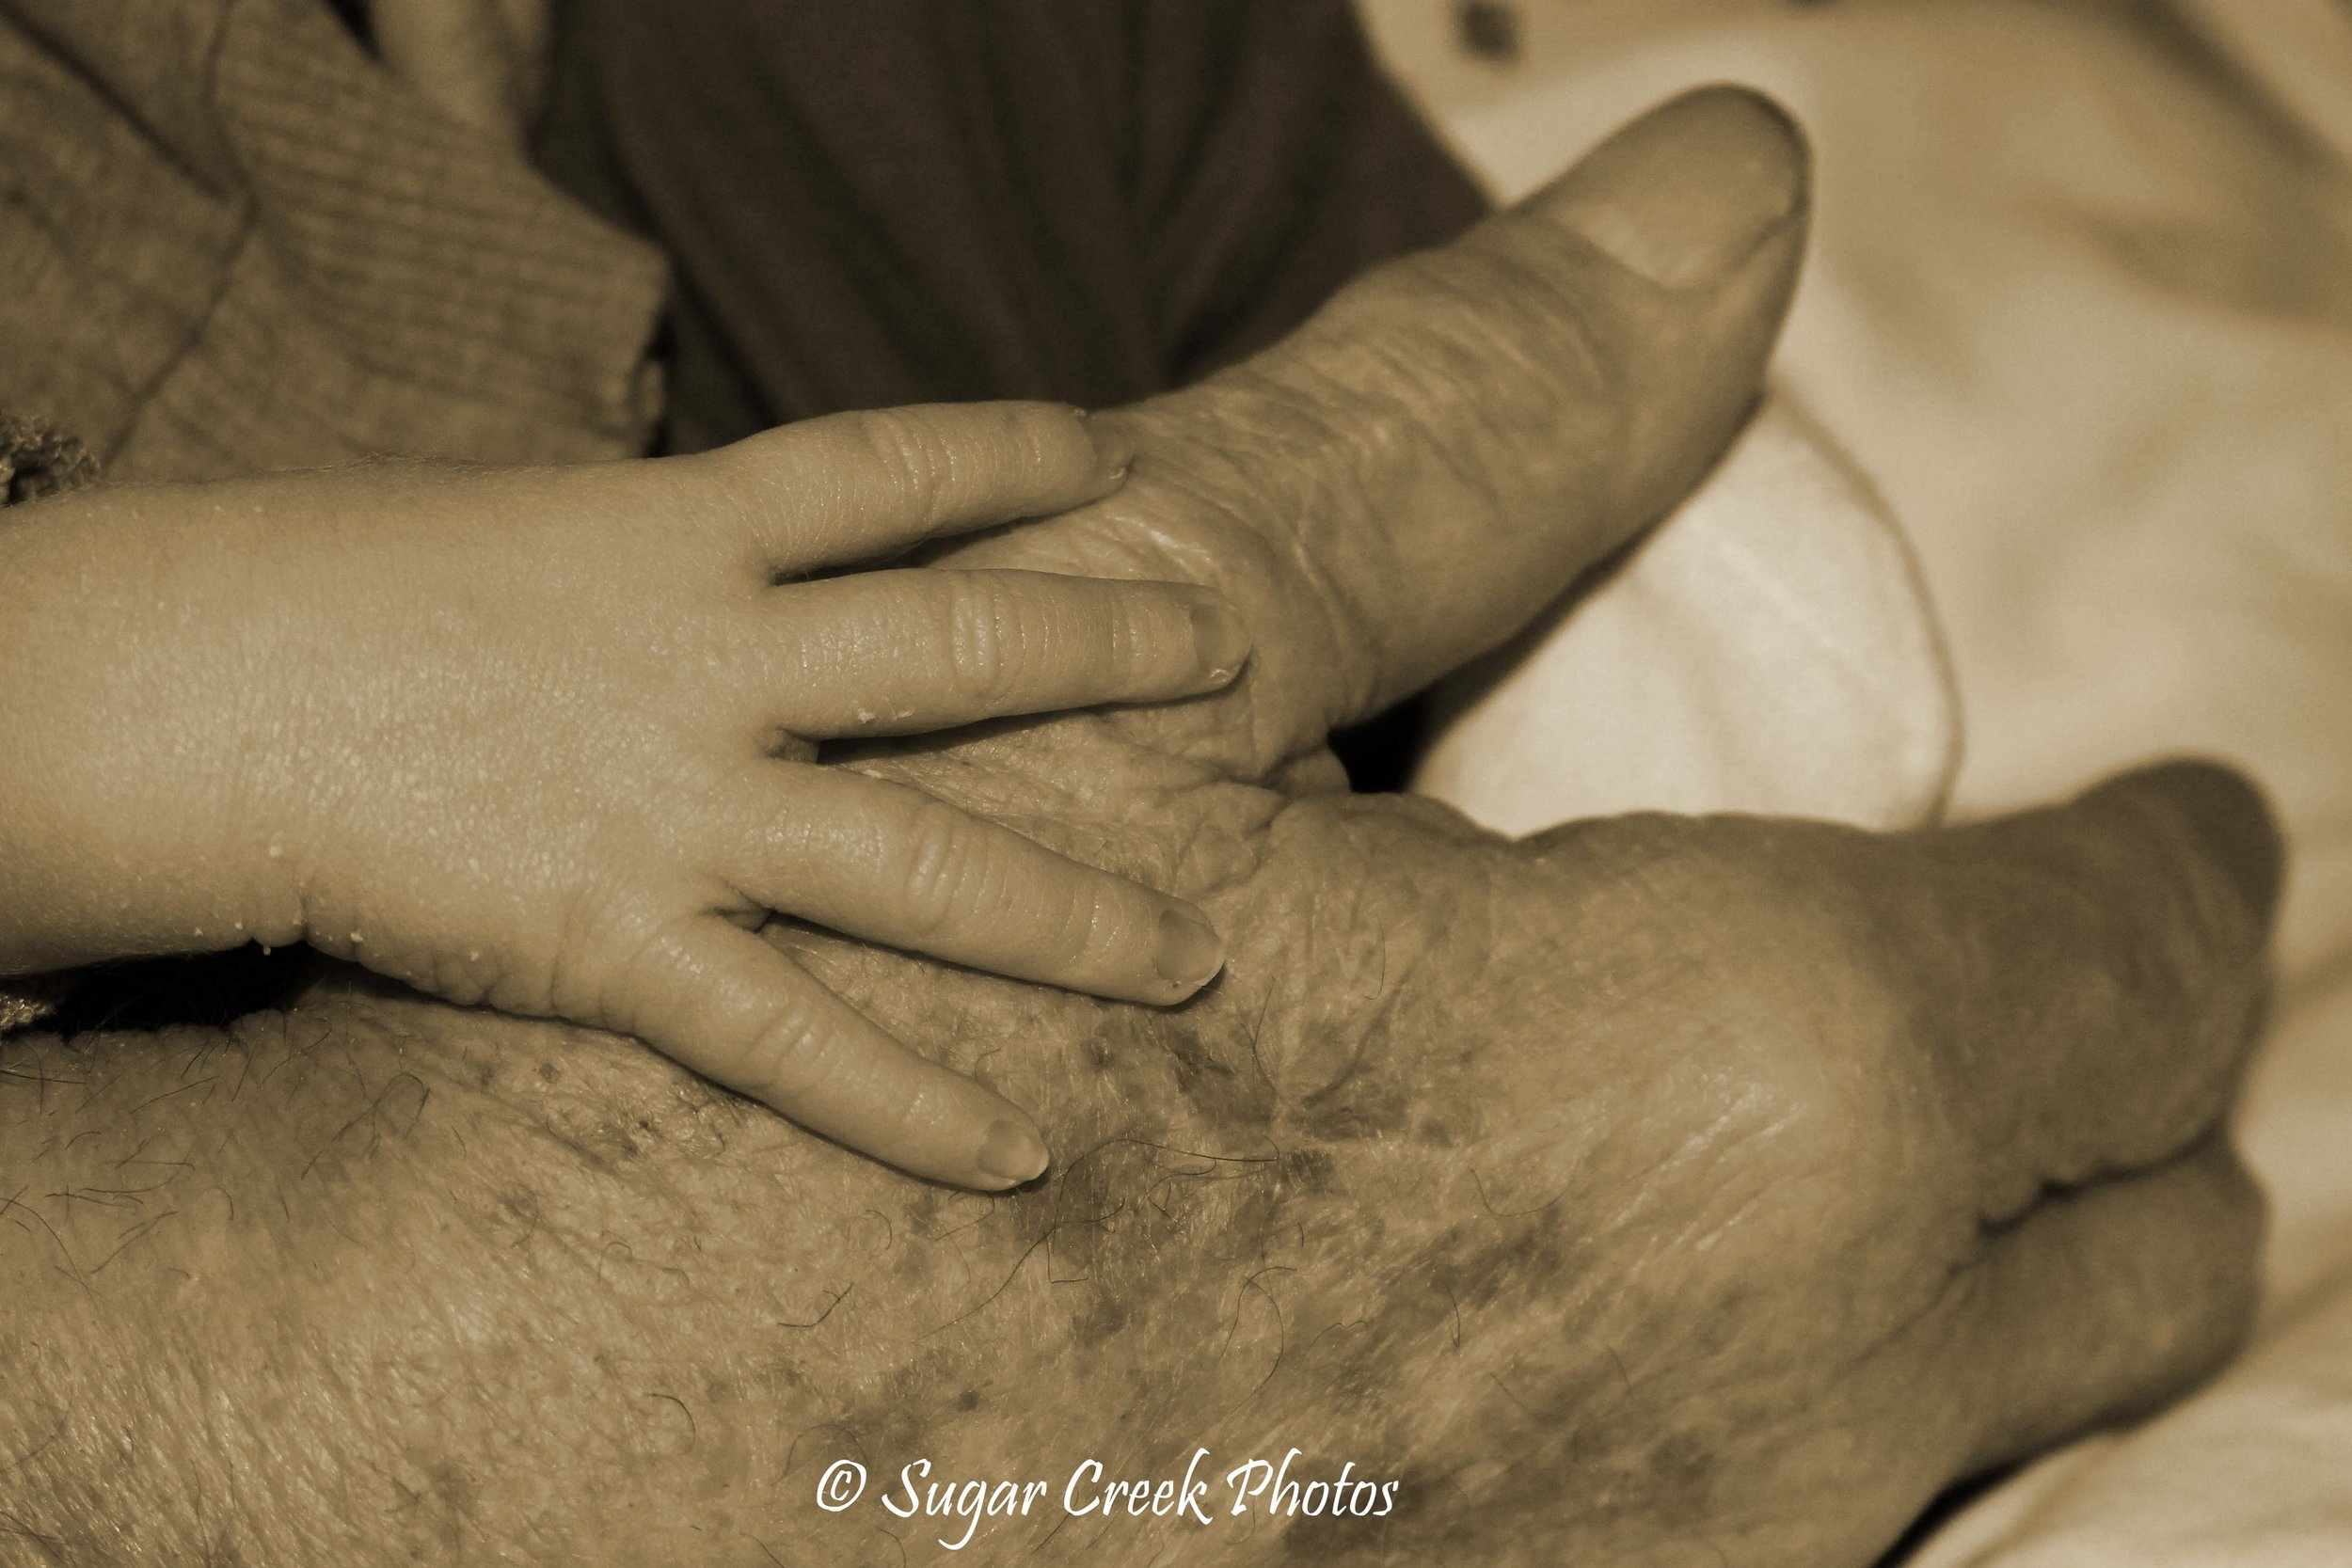 SCP hands sepia 4x6 IMG_6315.jpg